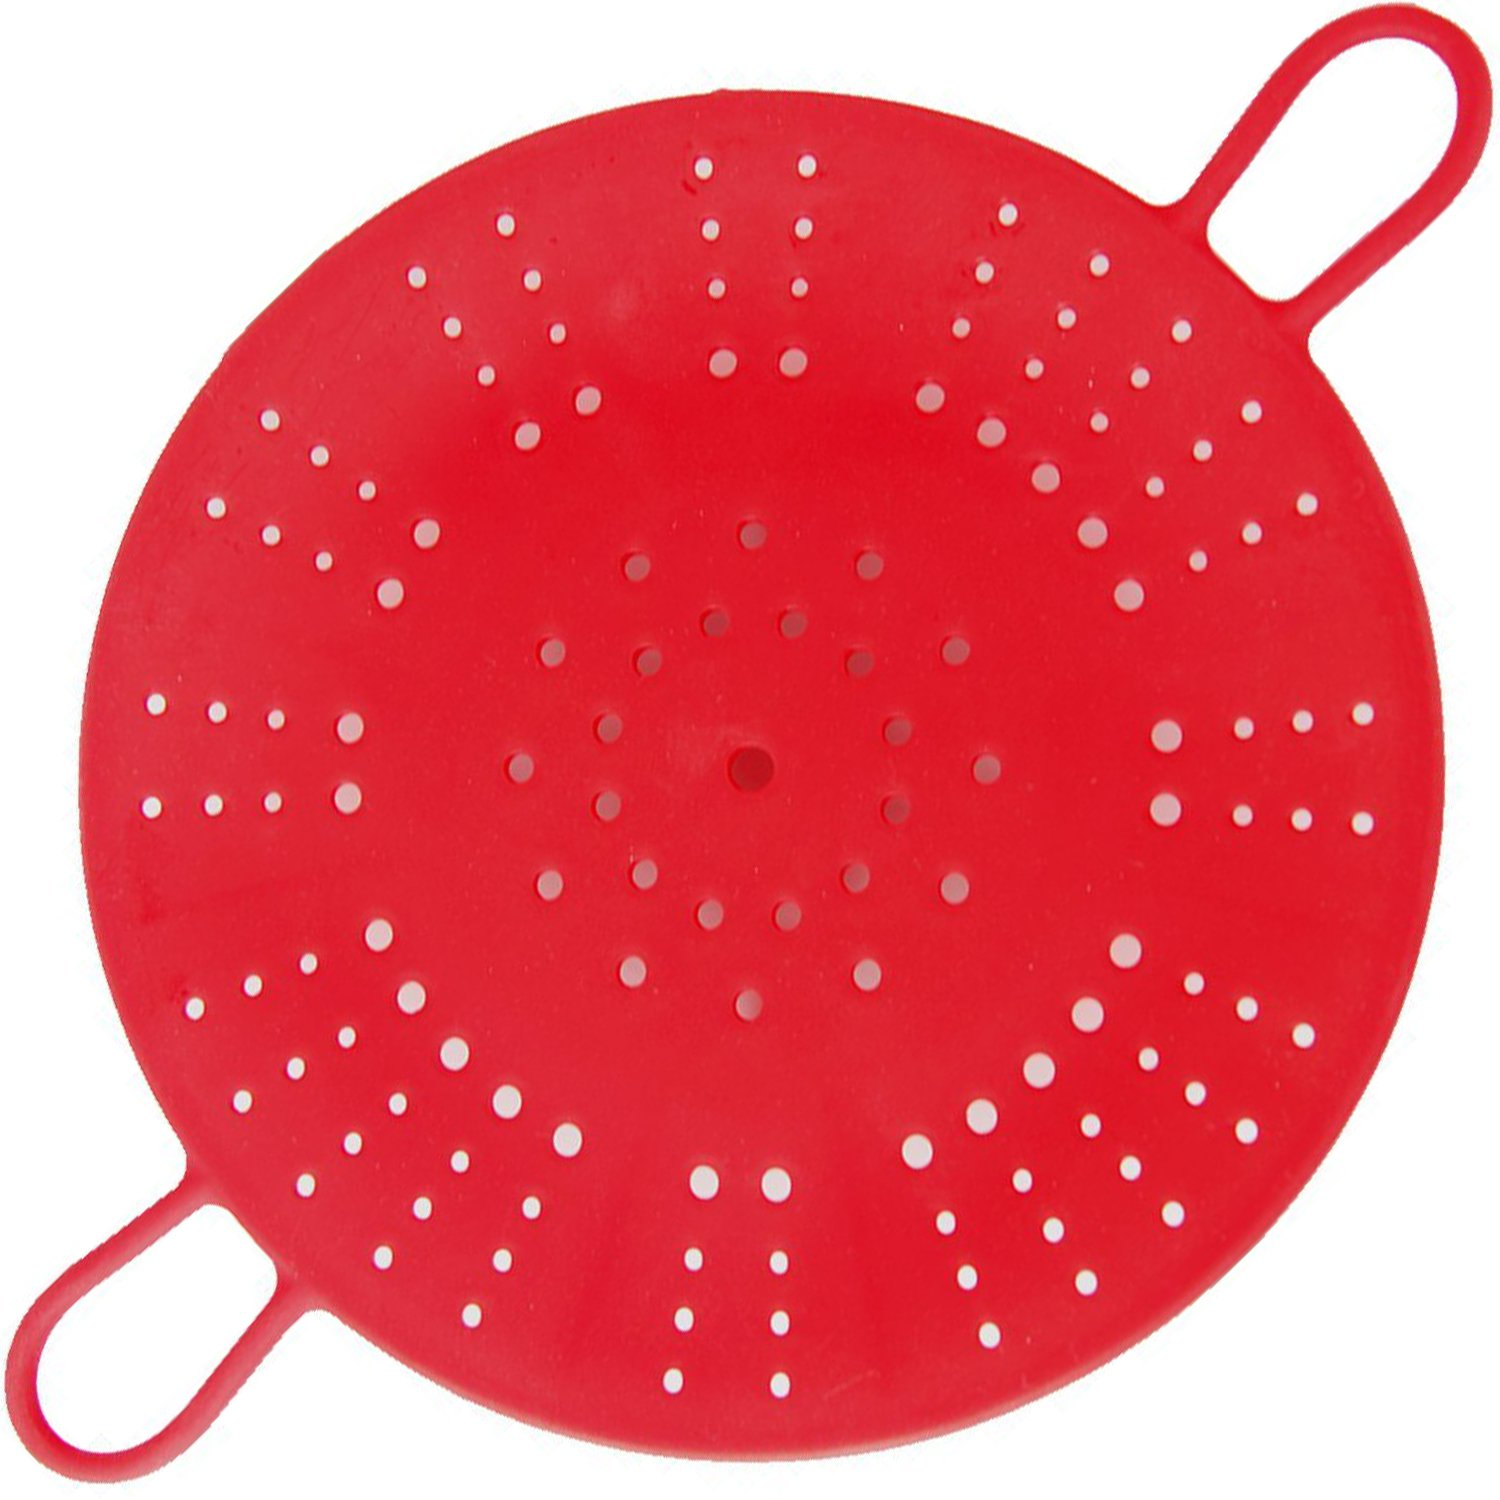 Vegetable Steamer Tray with Handle Bars for Healthy Cooking Fruits, Basket Pressure Cook Heat- Resistant Microwaveable, Dishwasher Safe